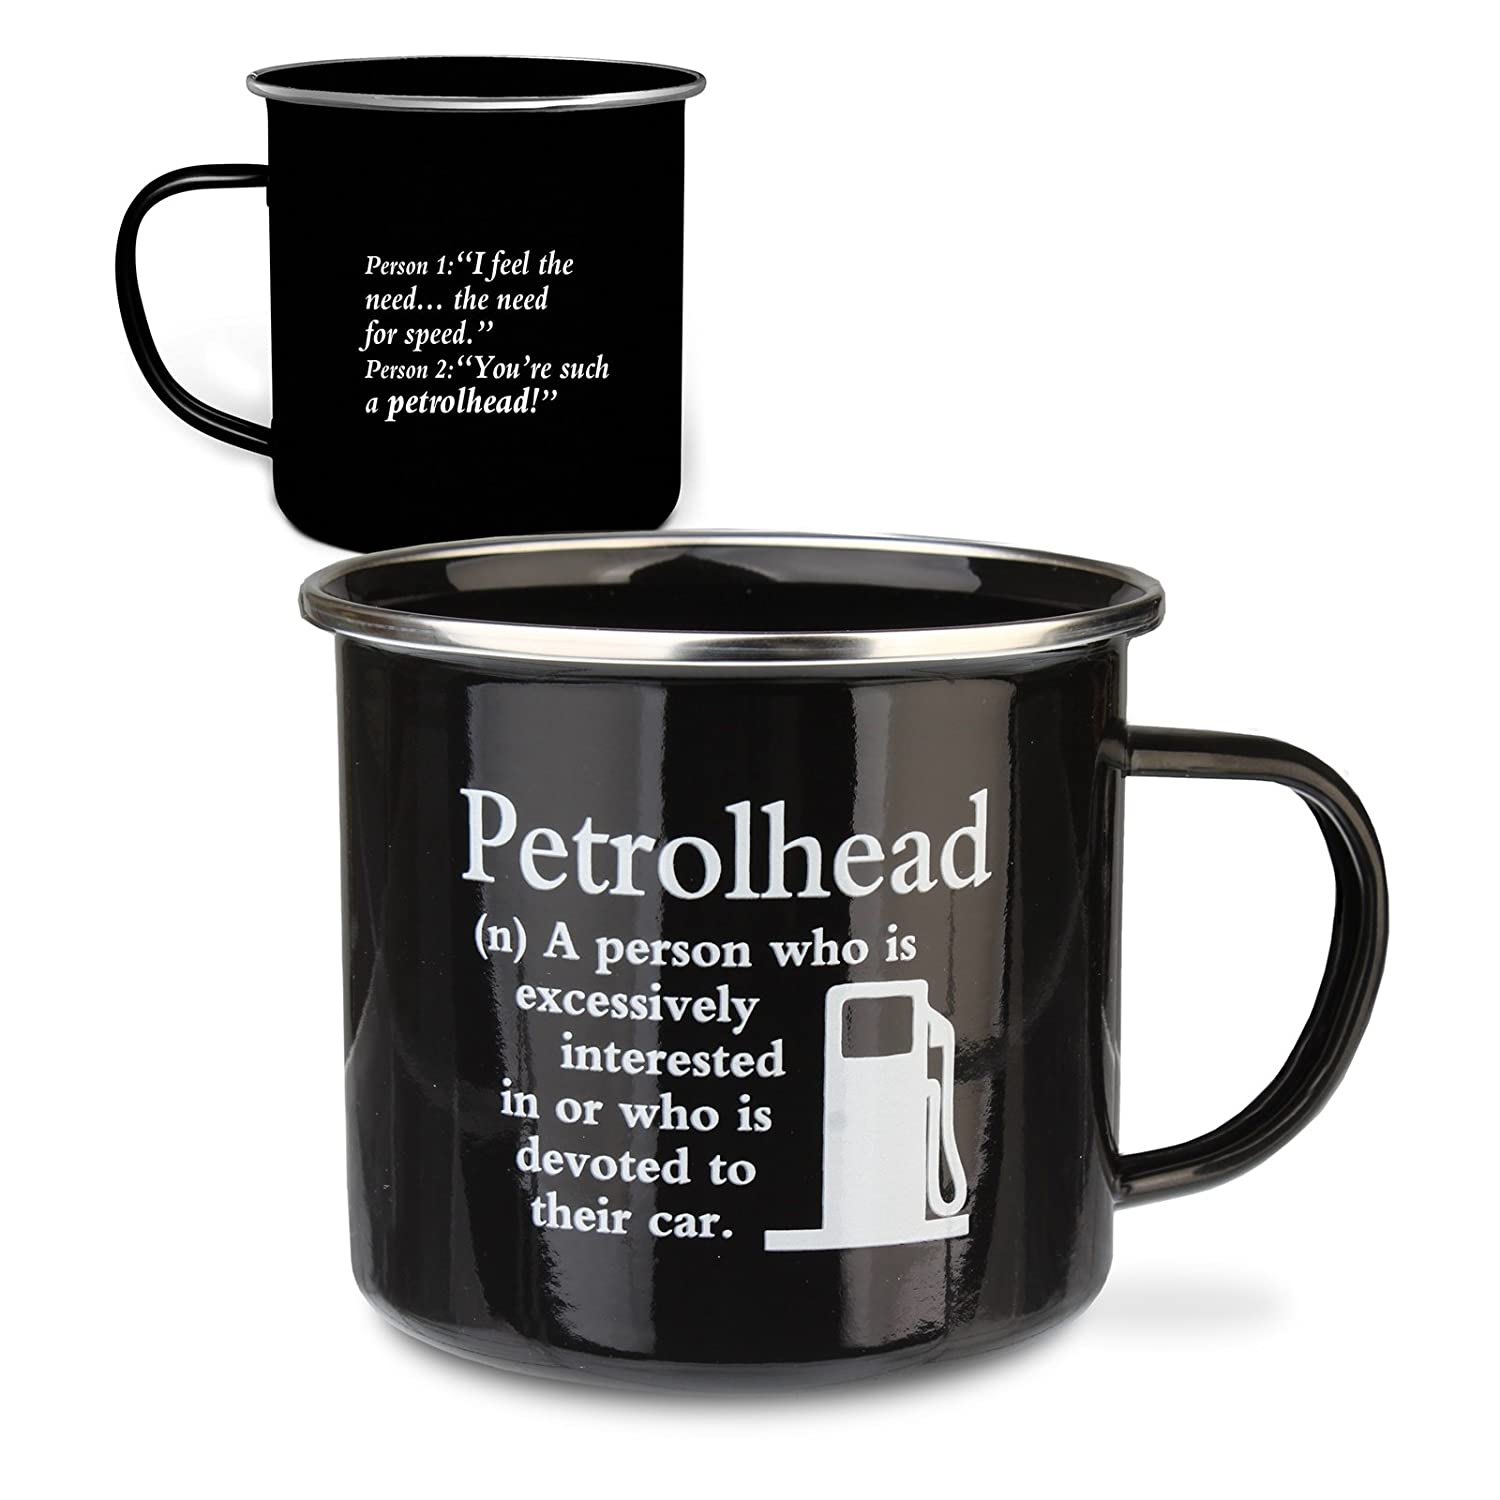 Urban Words Tin Mug'Petrolhead' Title and Slang Words Including Meaning. History & Heraldry